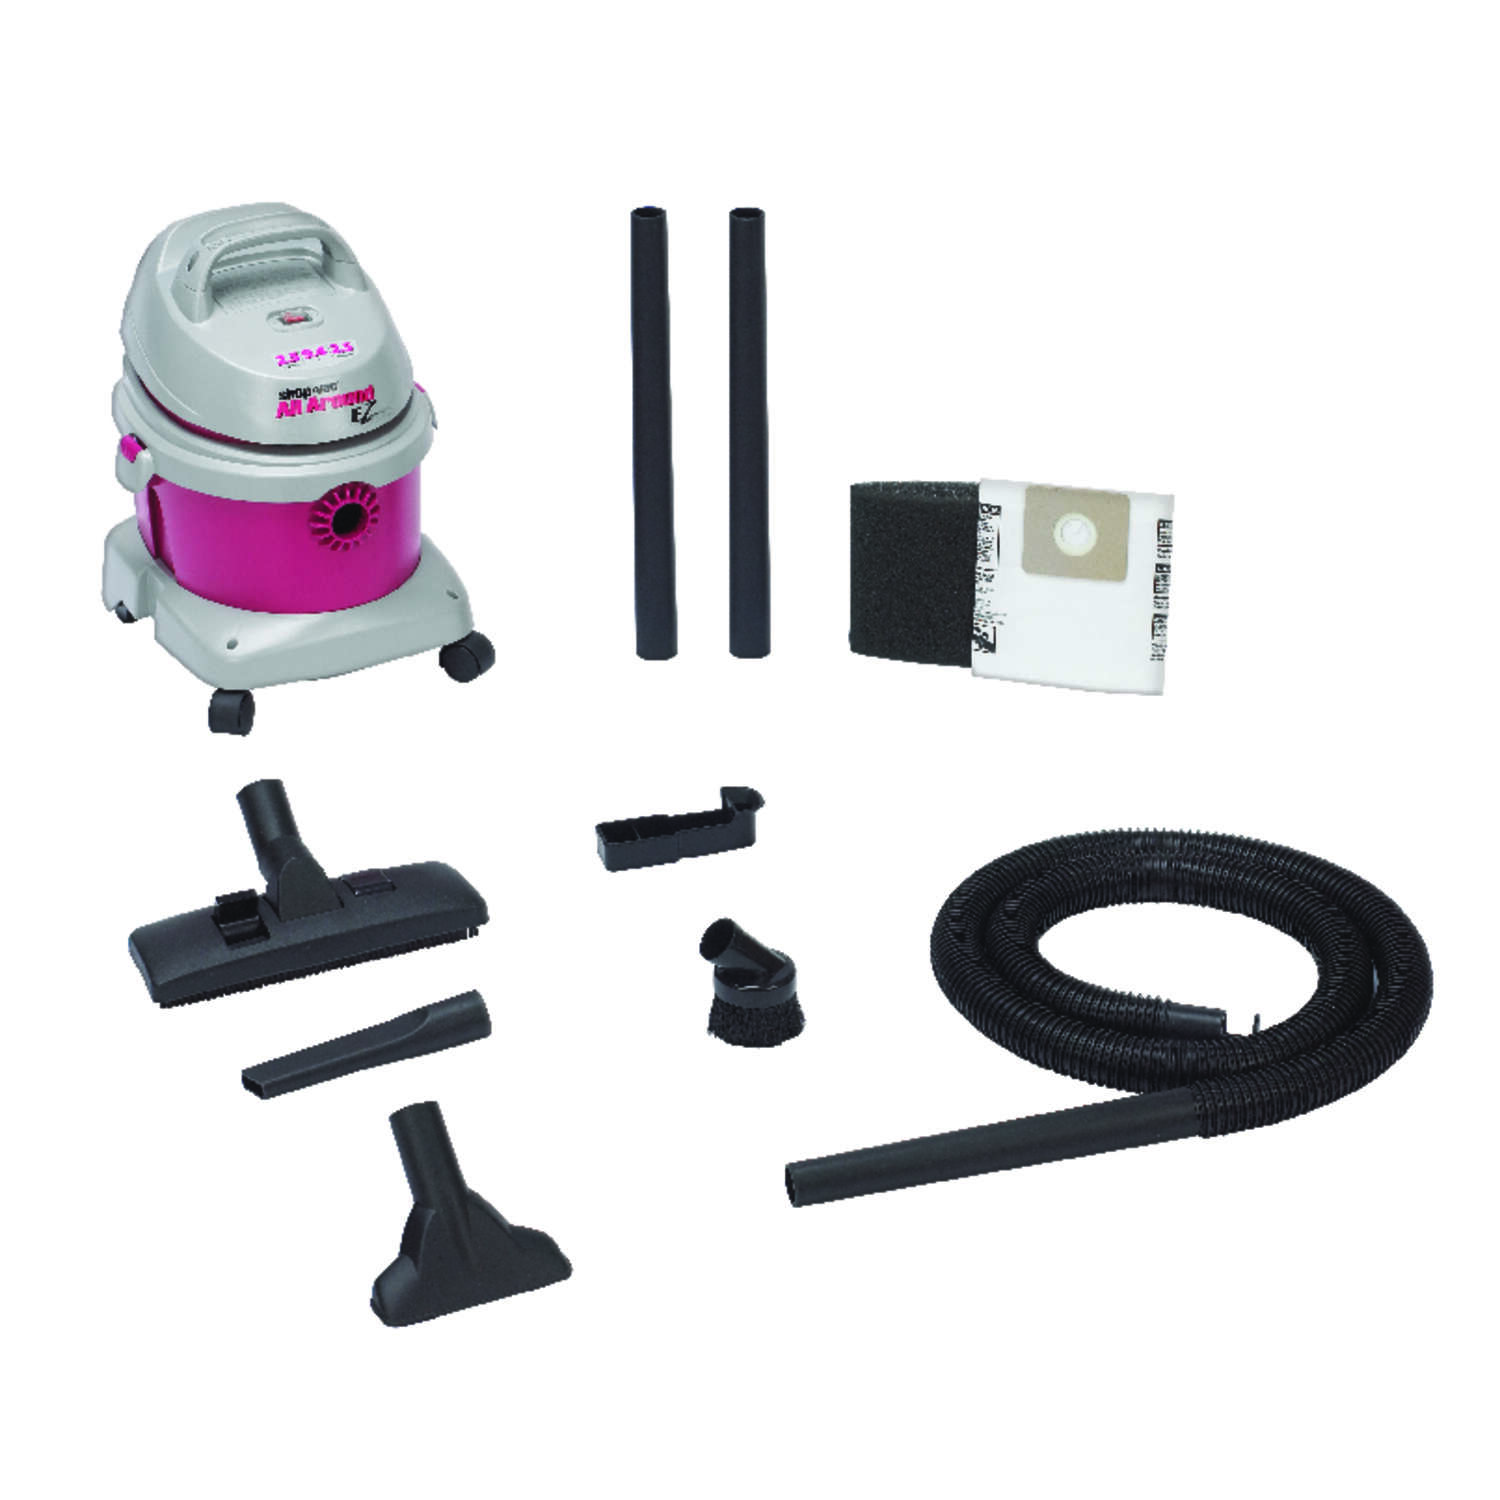 Shop-Vac  All Around EZ  K250  2.5 gal. Corded  All Around EZ  Wet/Dry Vacuum  8 amps 120 volt 2.5 h